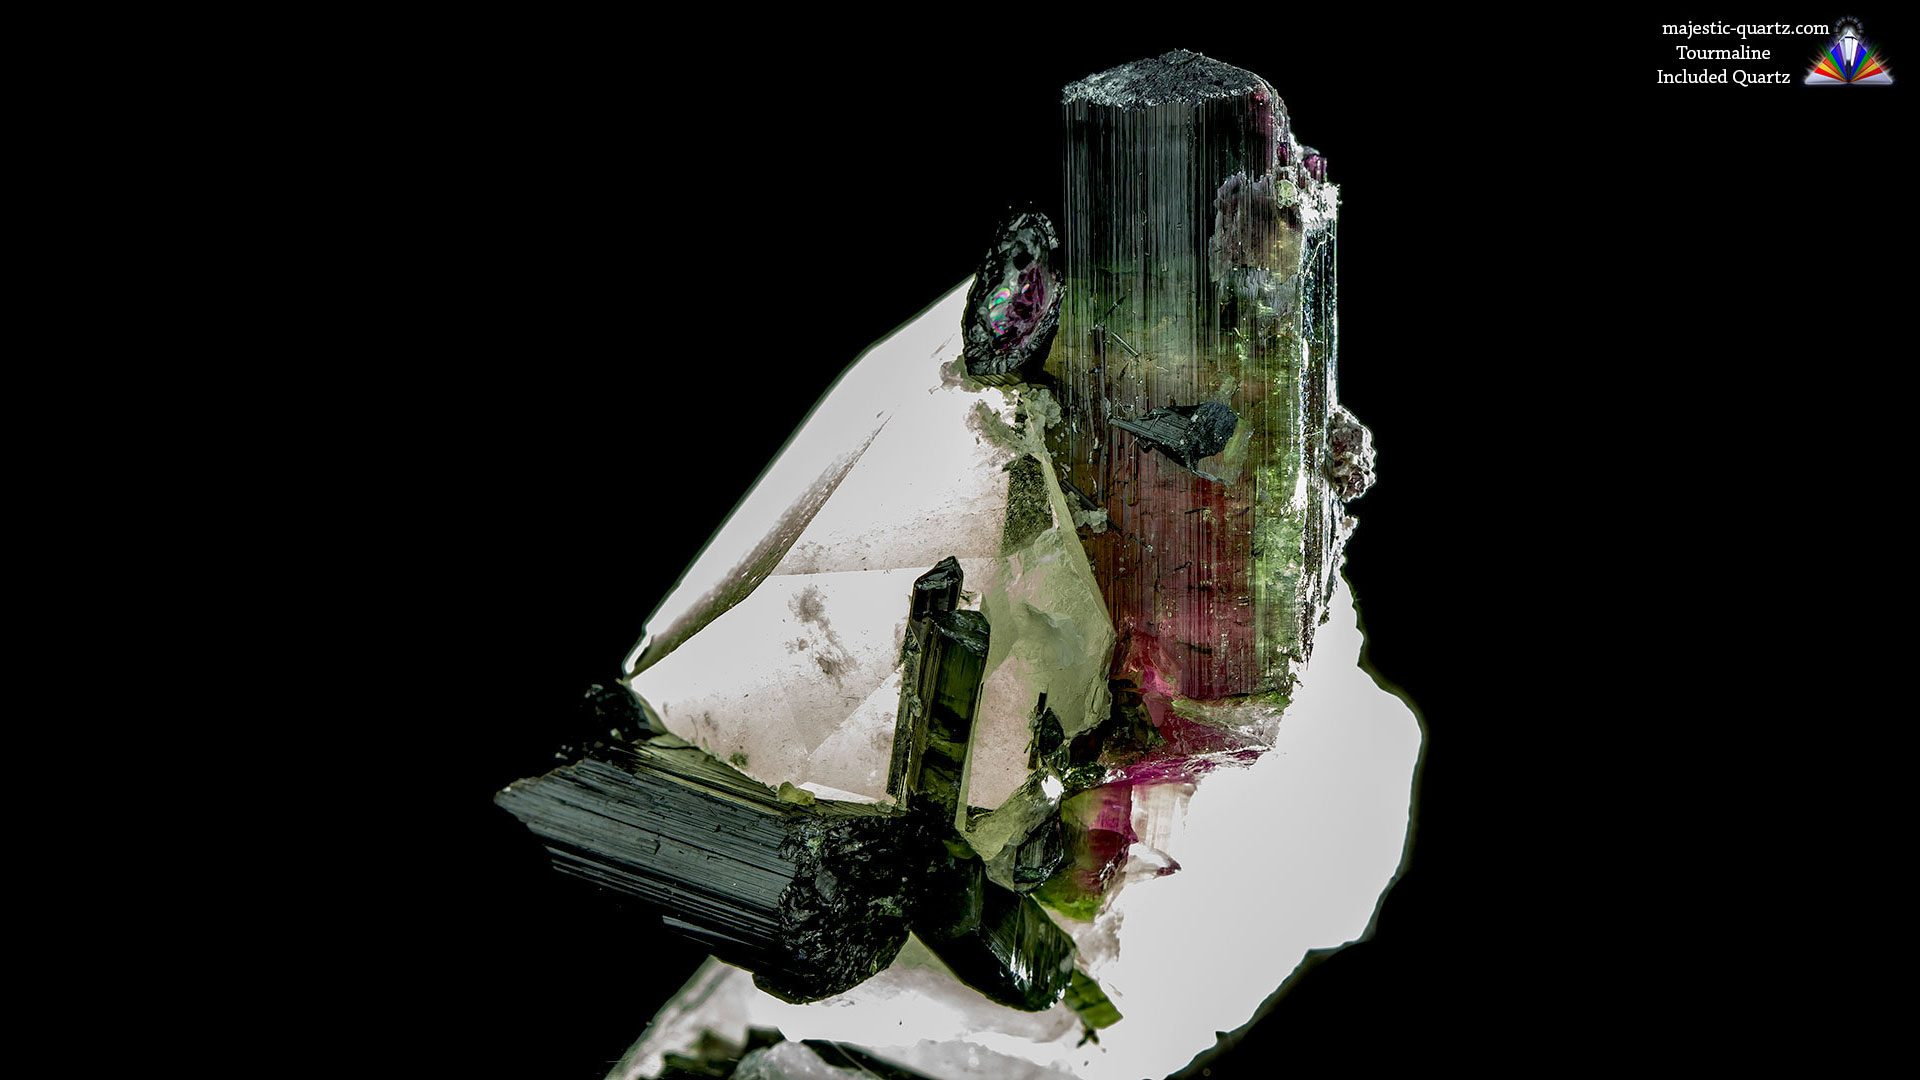 Watermelon Tourmaline Included Quartz Crystal - Photograph by Anthony Bradford